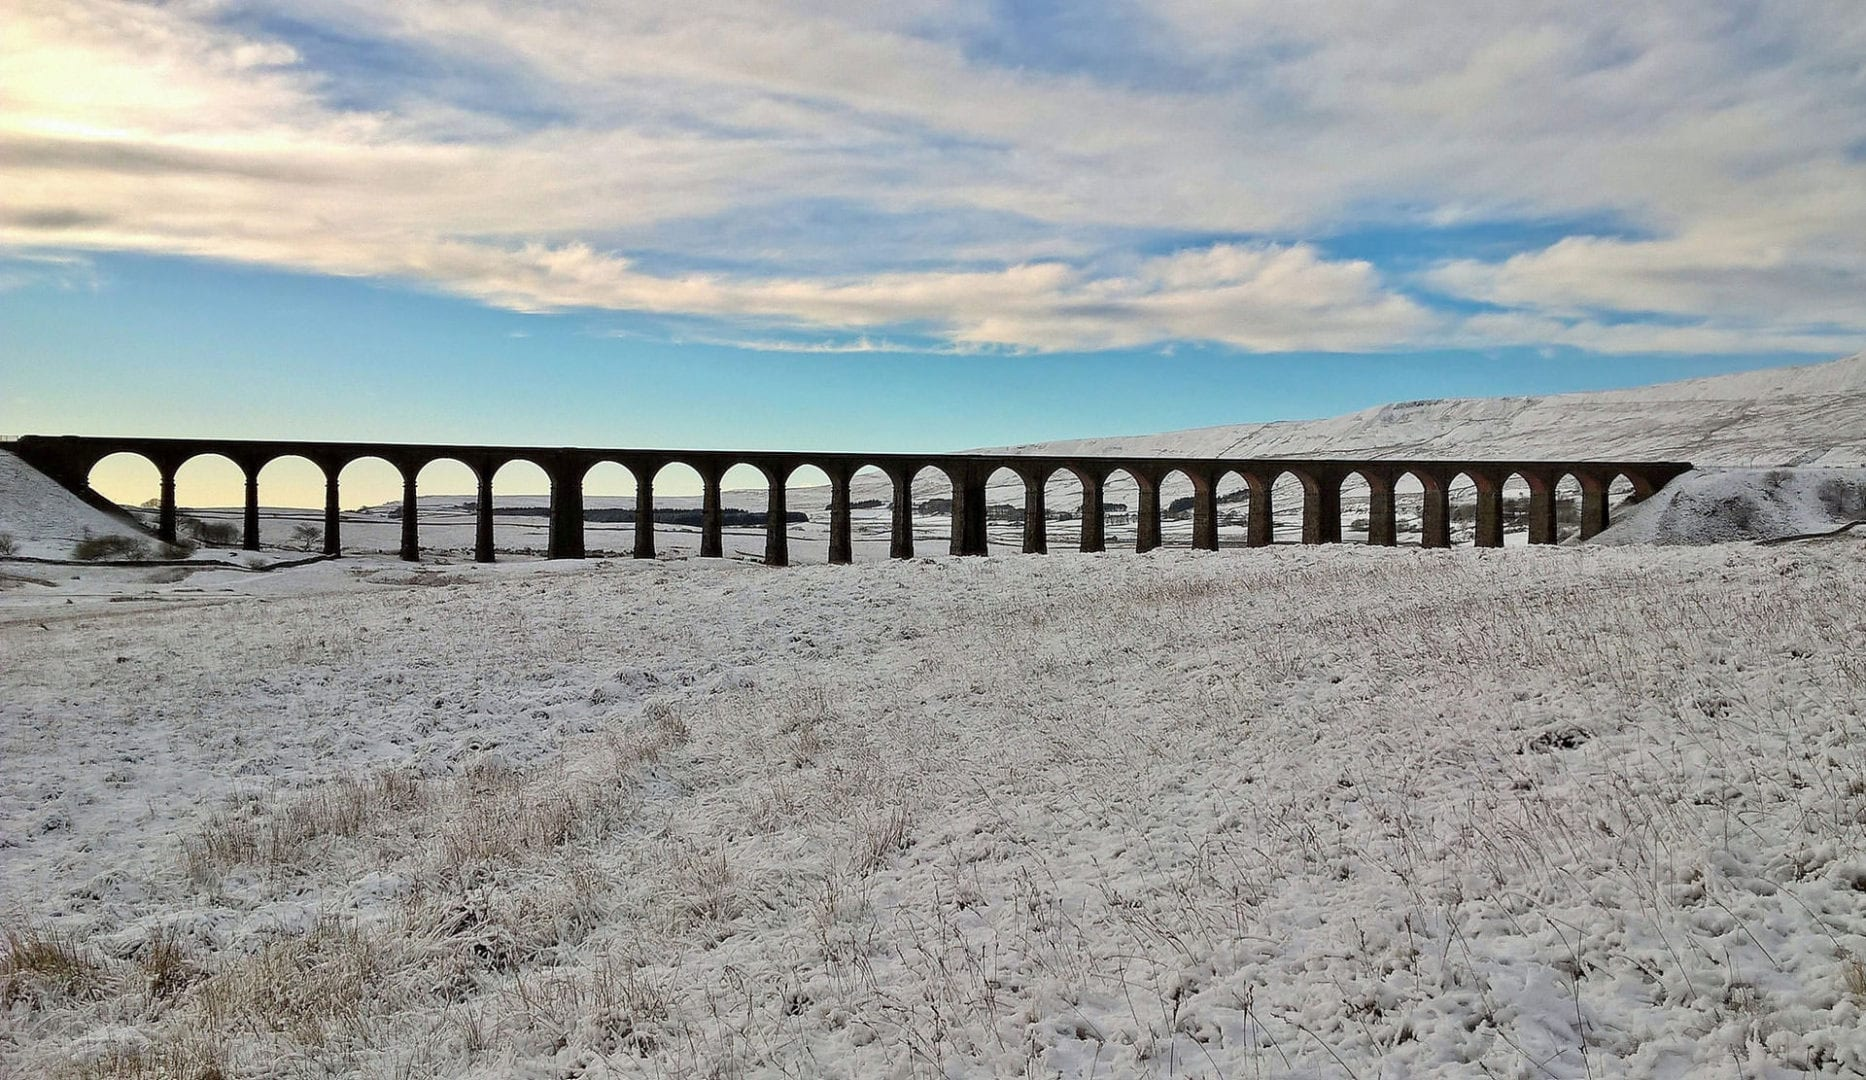 Christmas at the ribblehead viaduct near Guaber bunkbarn